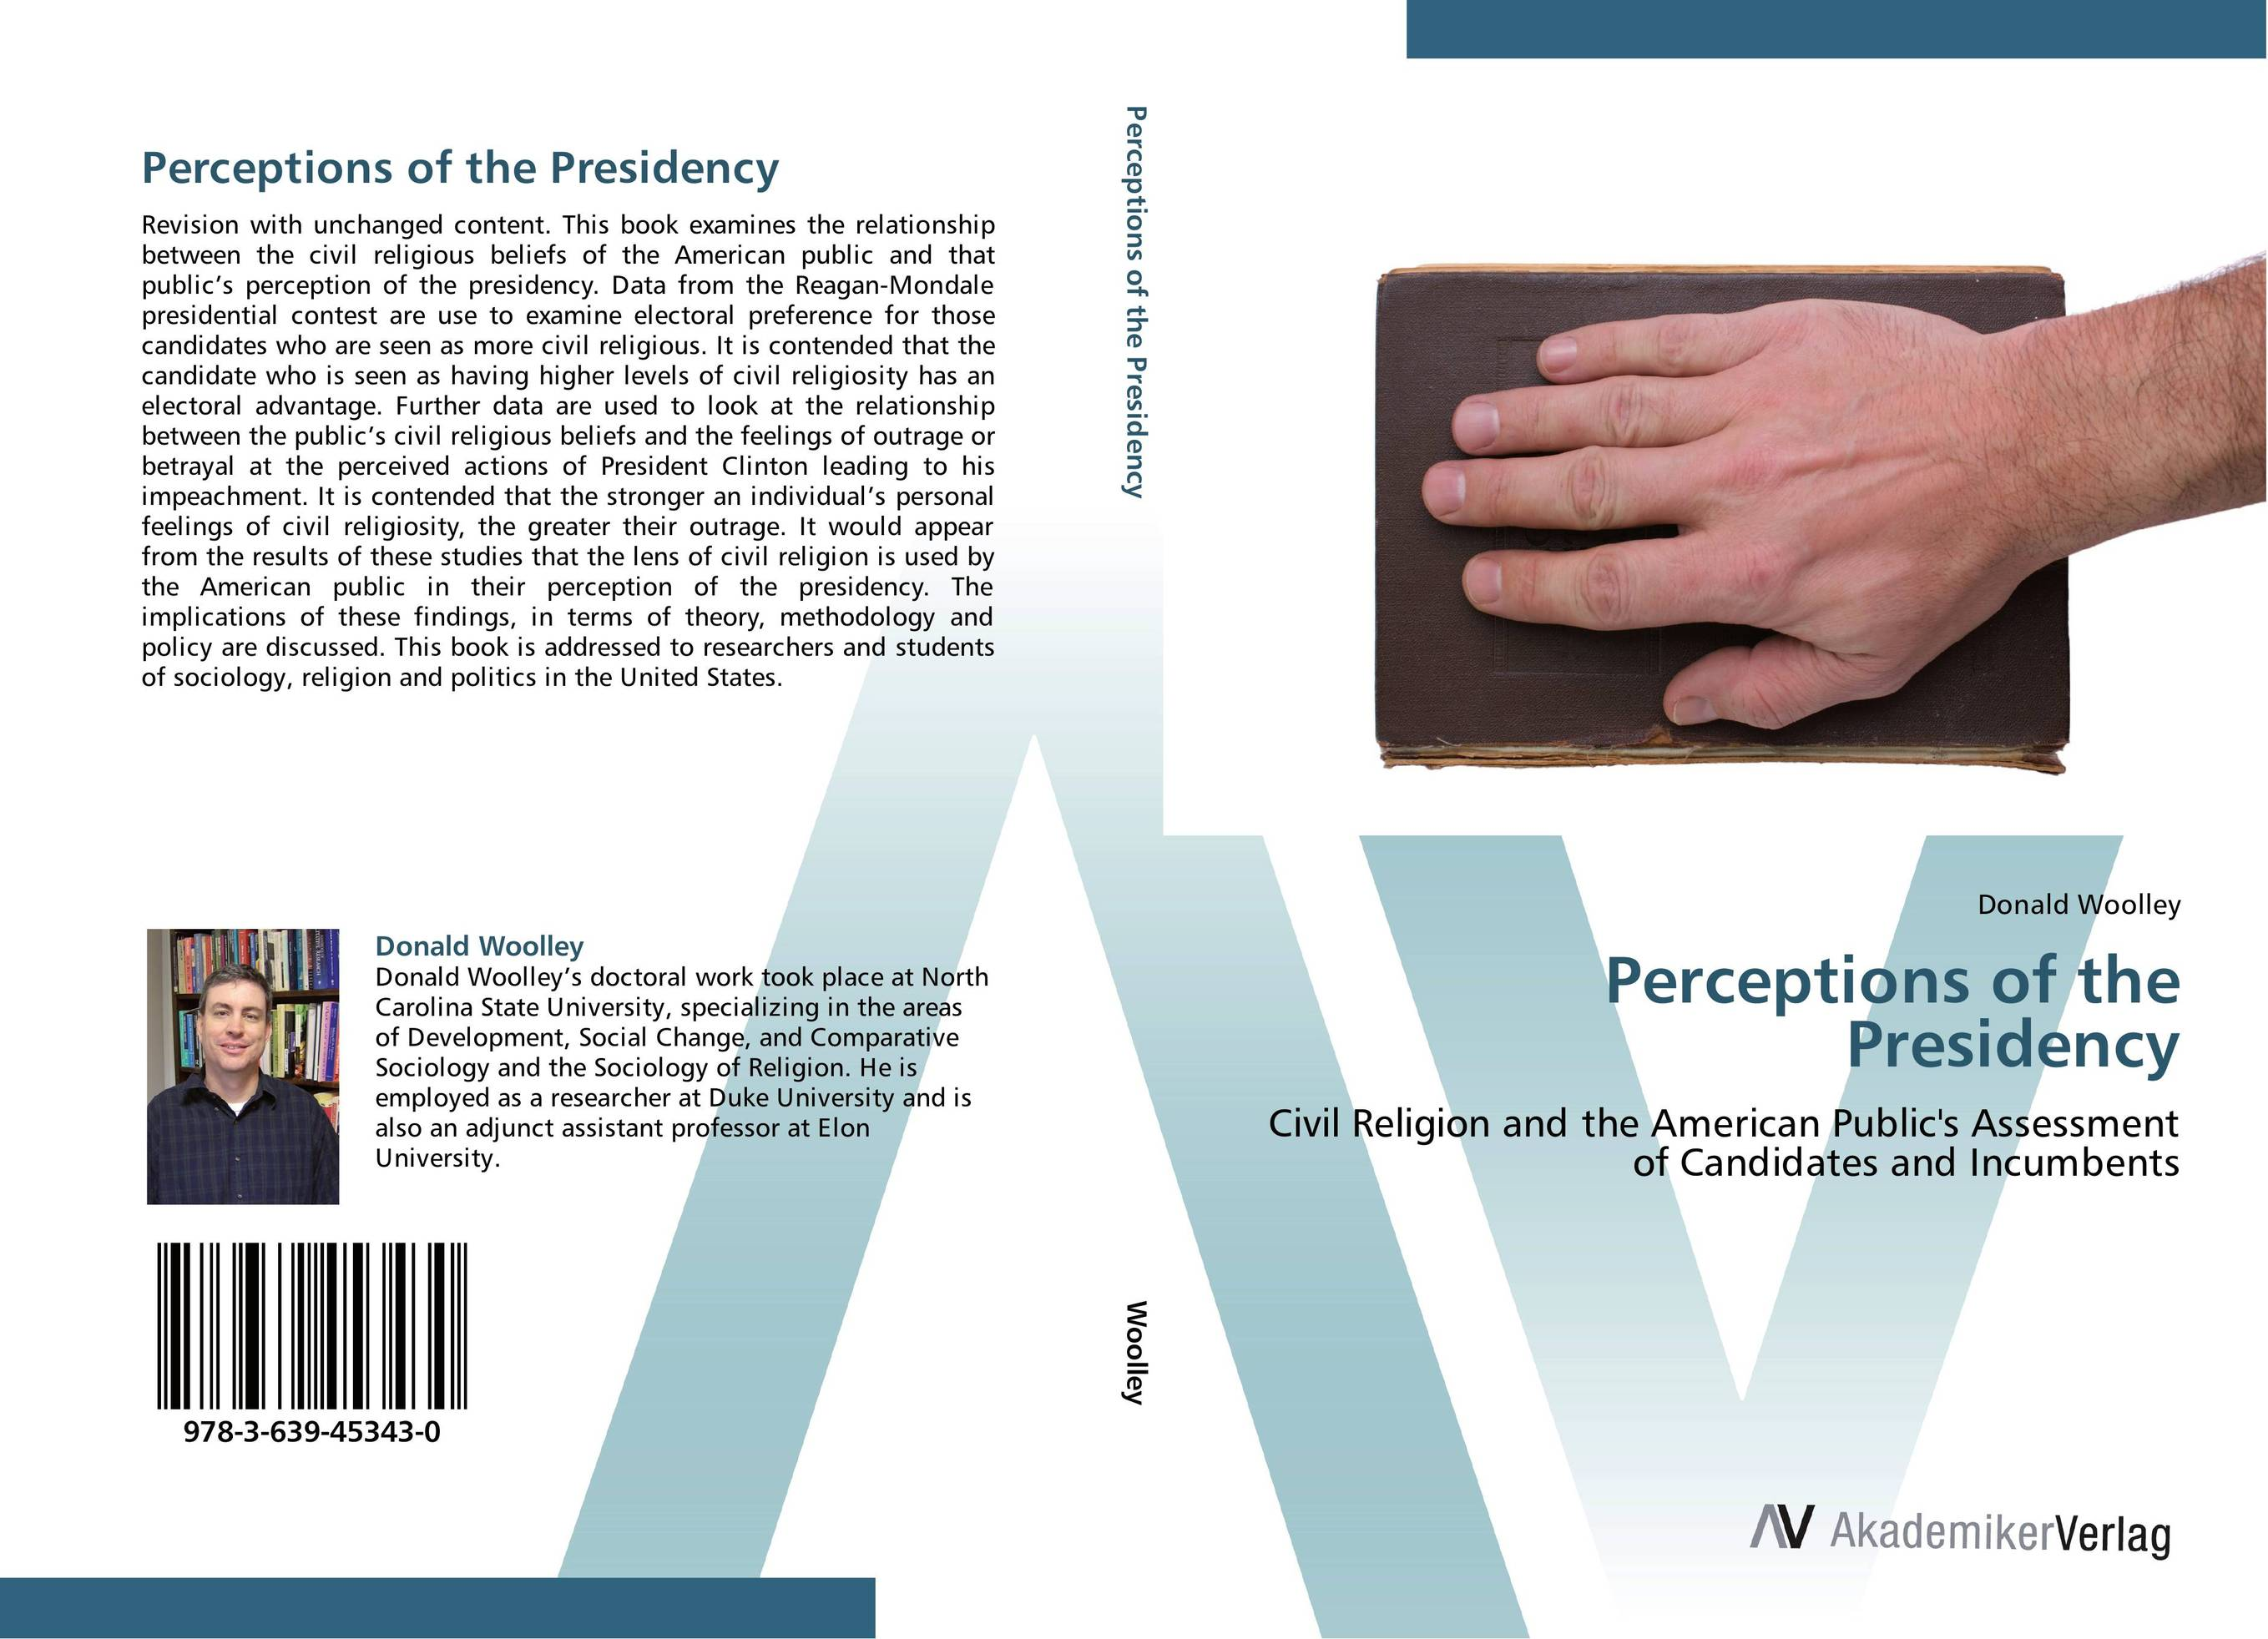 Perceptions of the Presidency victorian america and the civil war